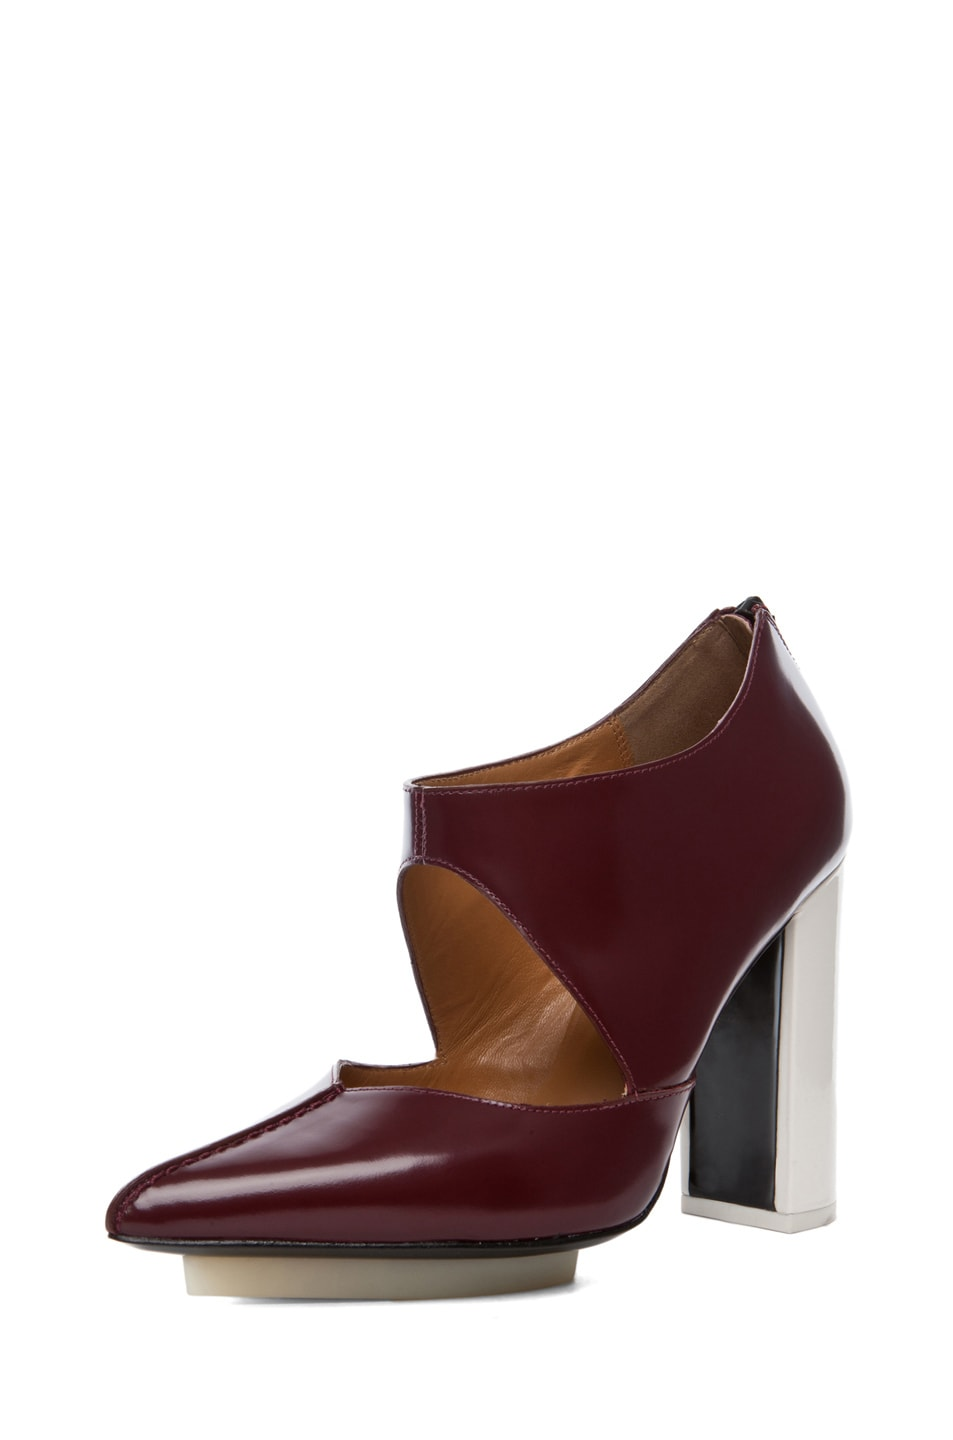 Image 2 of 3.1 phillip lim Kadie Cut Out Bootie in Prune